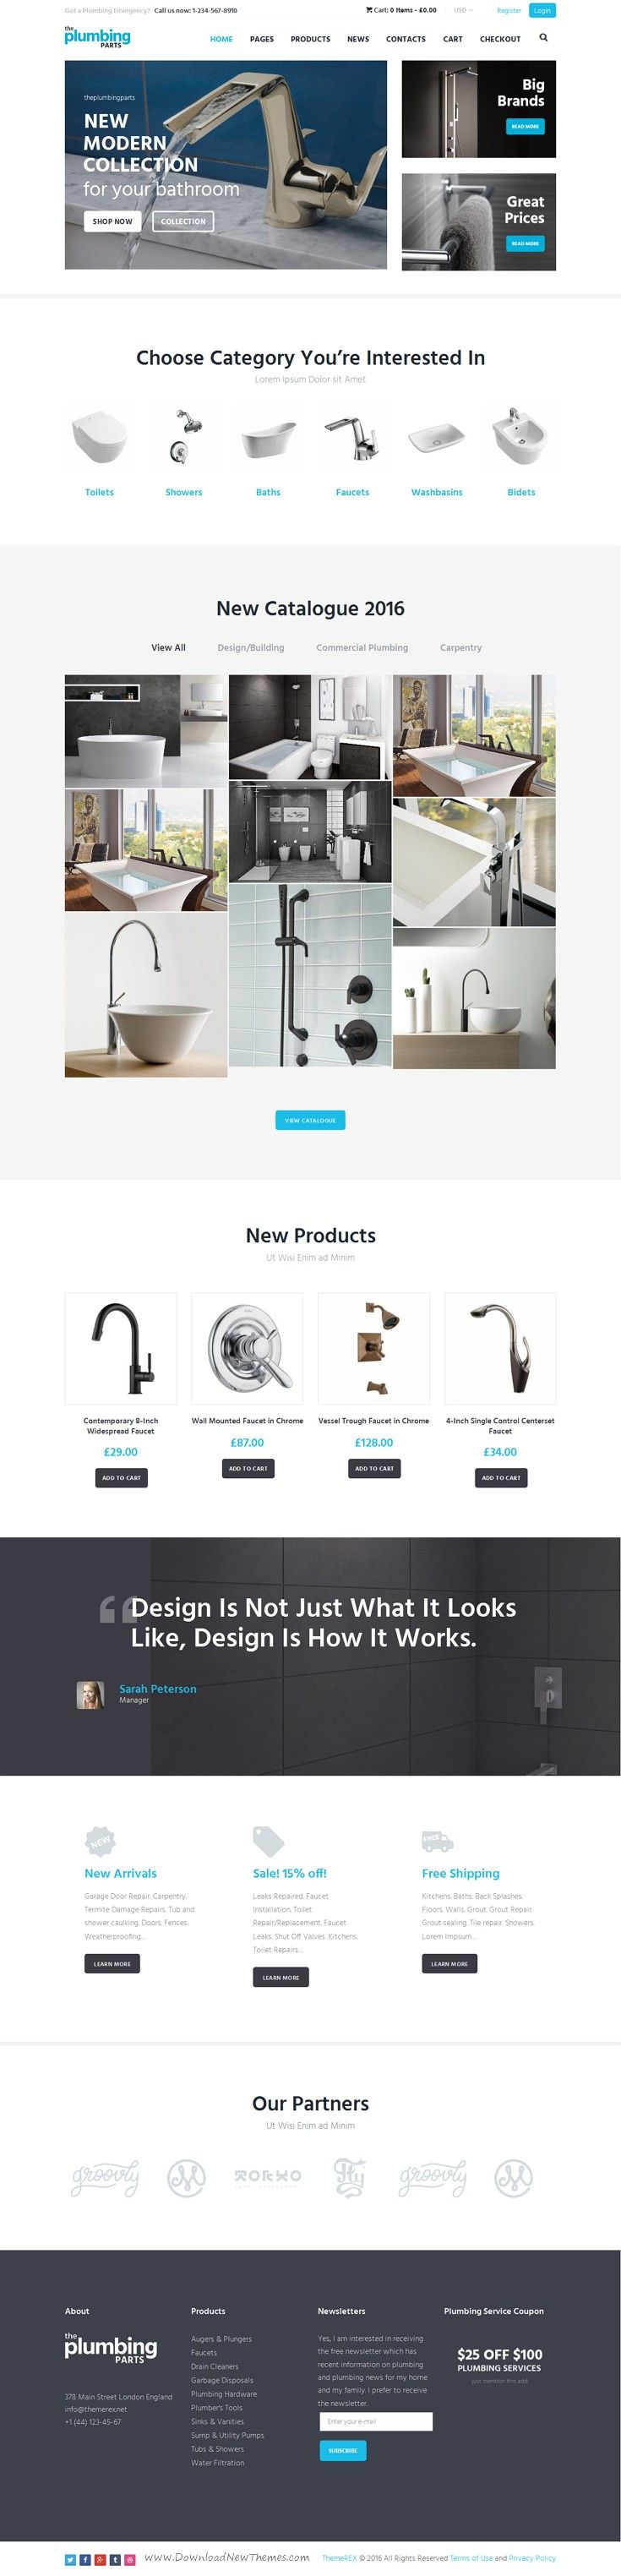 Beautiful responsive WordPress eCommerce theme for any home #repair and maintenance business: #plumbing, carpentry, remodeling & #renovation, construction #website. Download Now!